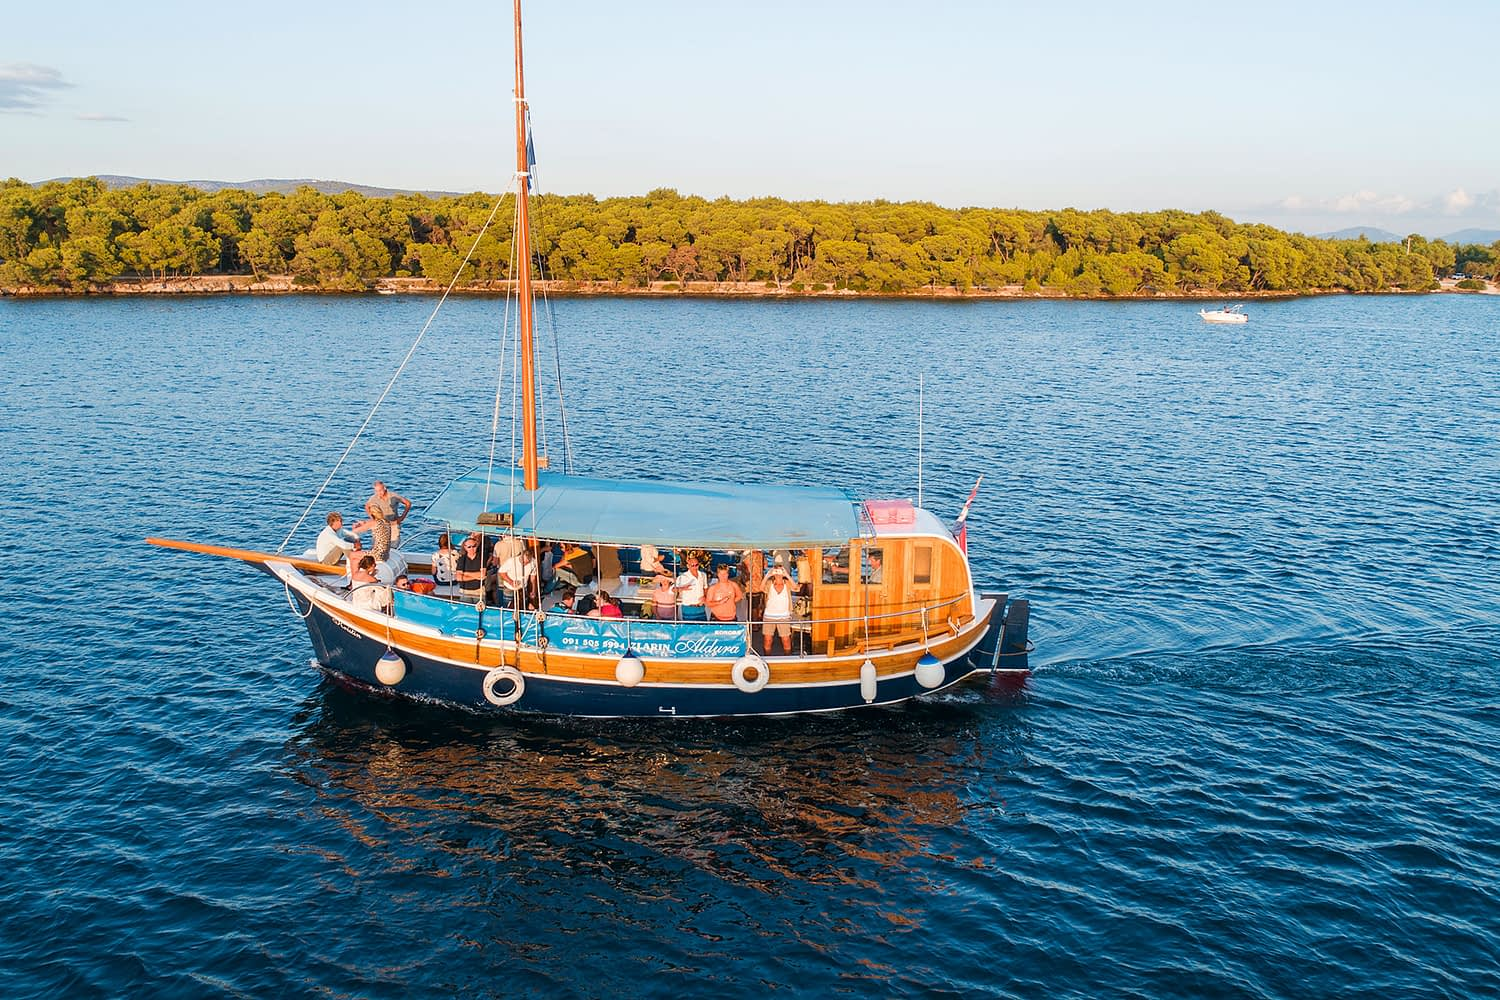 Archipelago Tours Large Groups Big Boat Tour - Custom Made - Photo of the boat taken from the air